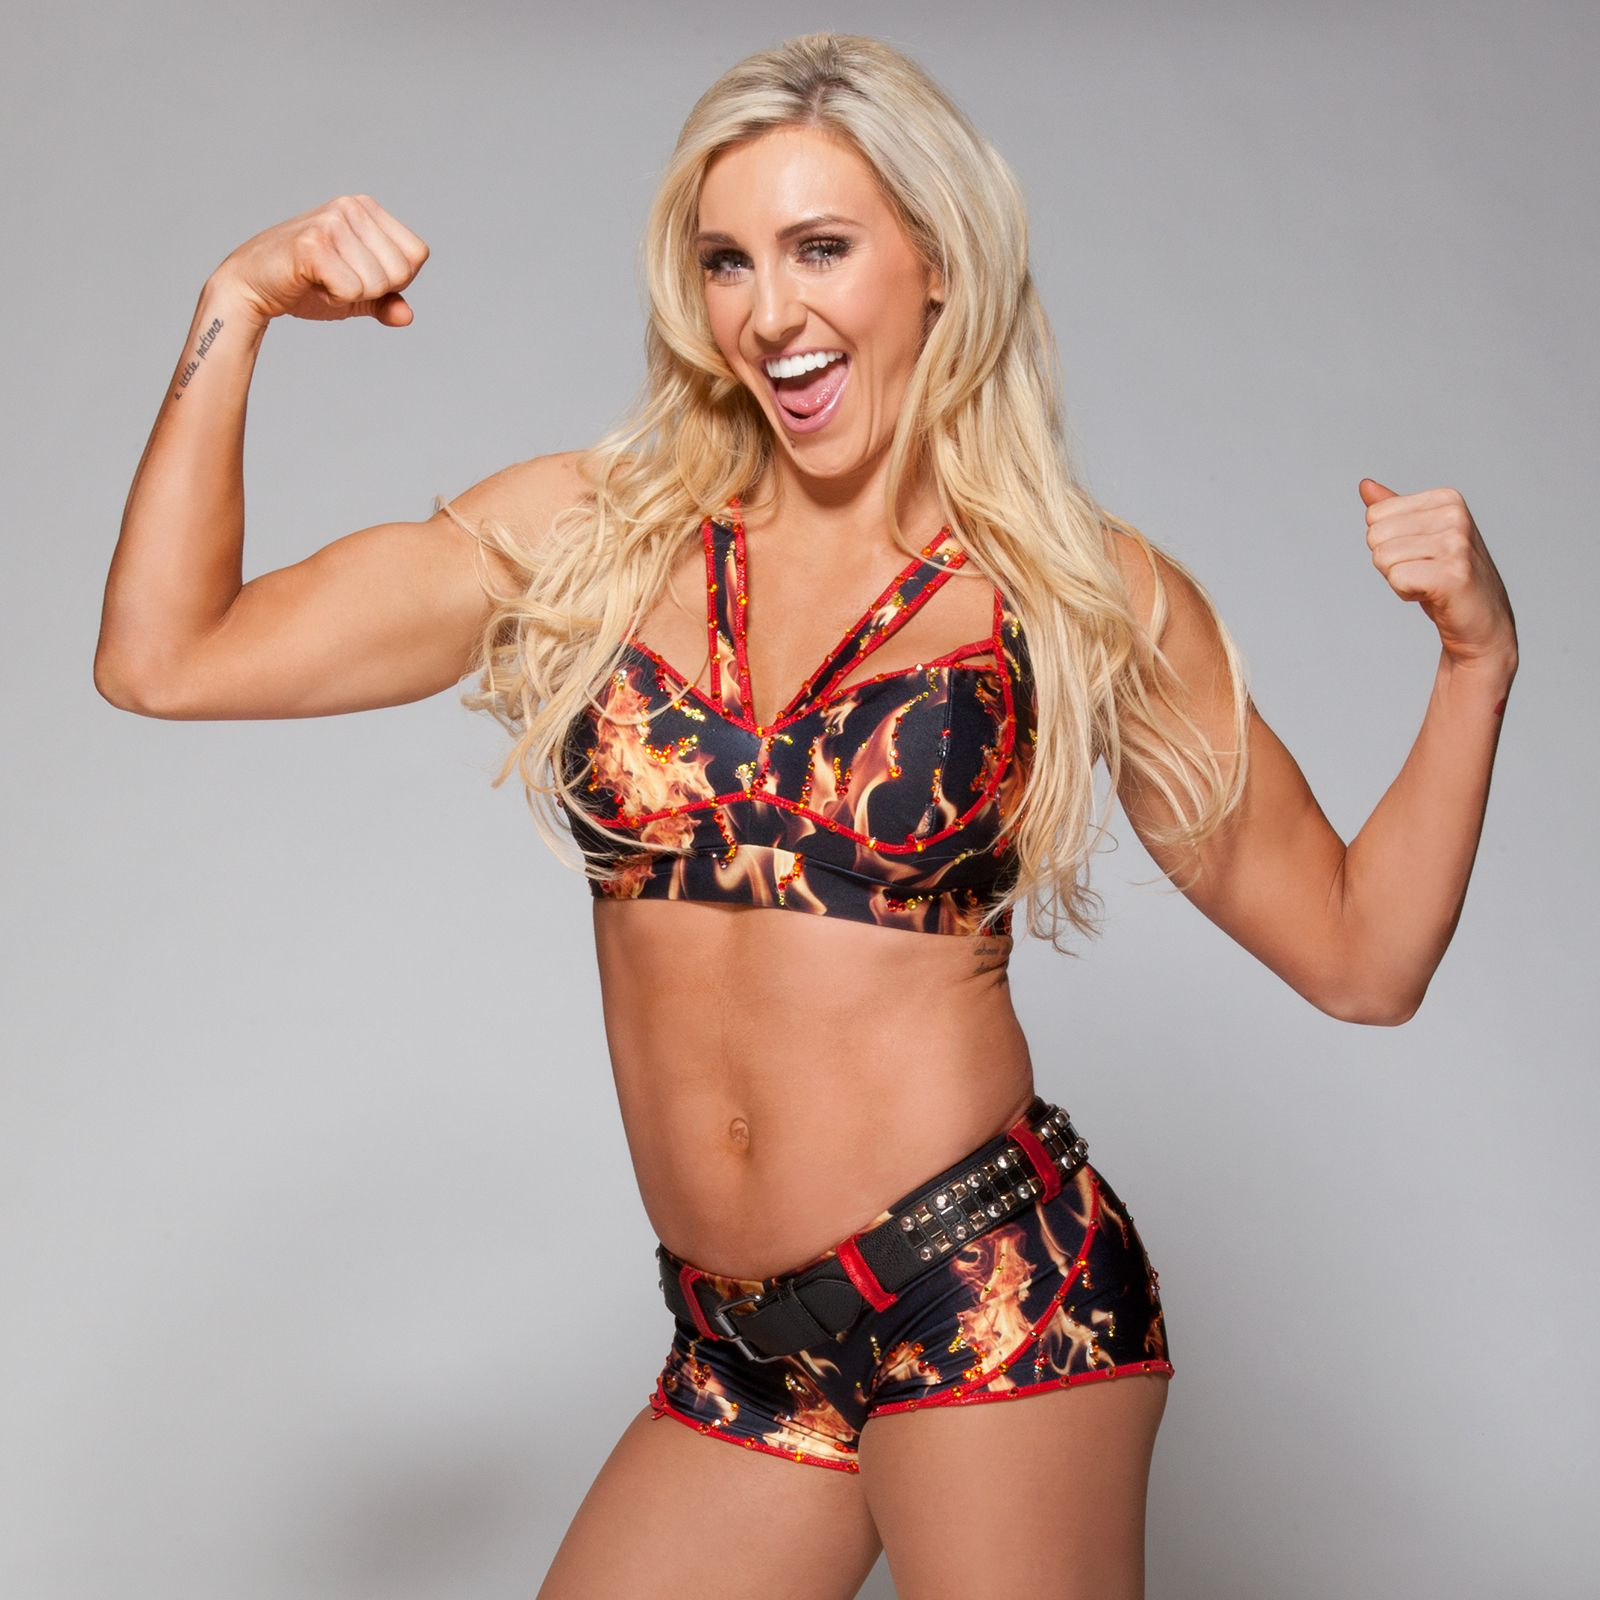 Celebrites Charlotte Flair nude (48 photo), Tits, Leaked, Selfie, butt 2020